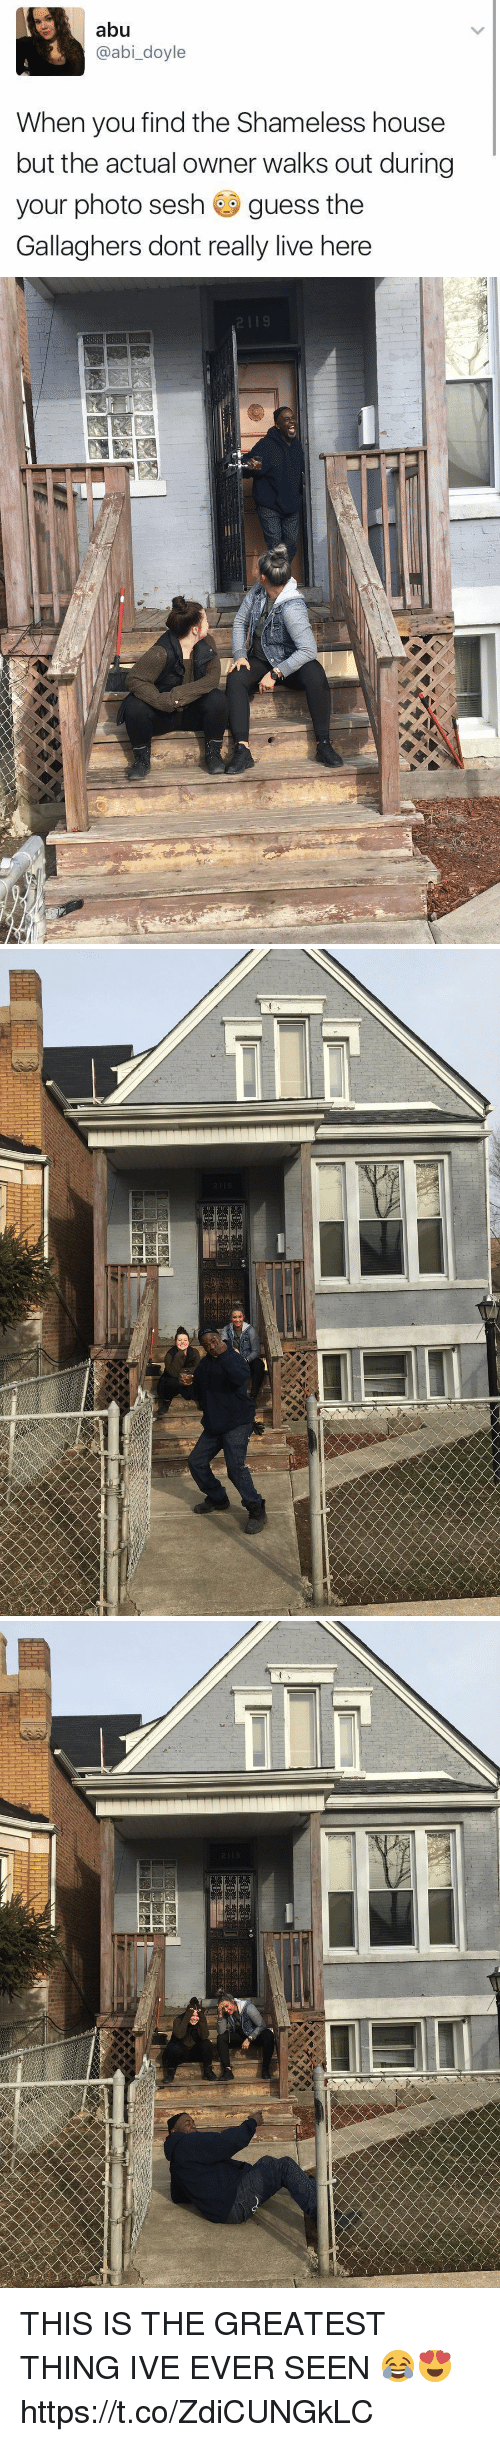 aby: abu  @abi doyle  When you find the Shameless house  but the actual owner walks out during  your photo sesh  guess the  Gallaghers dont really live here   2 19   篋瑟 THIS IS THE GREATEST THING IVE EVER SEEN 😂😍 https://t.co/ZdiCUNGkLC